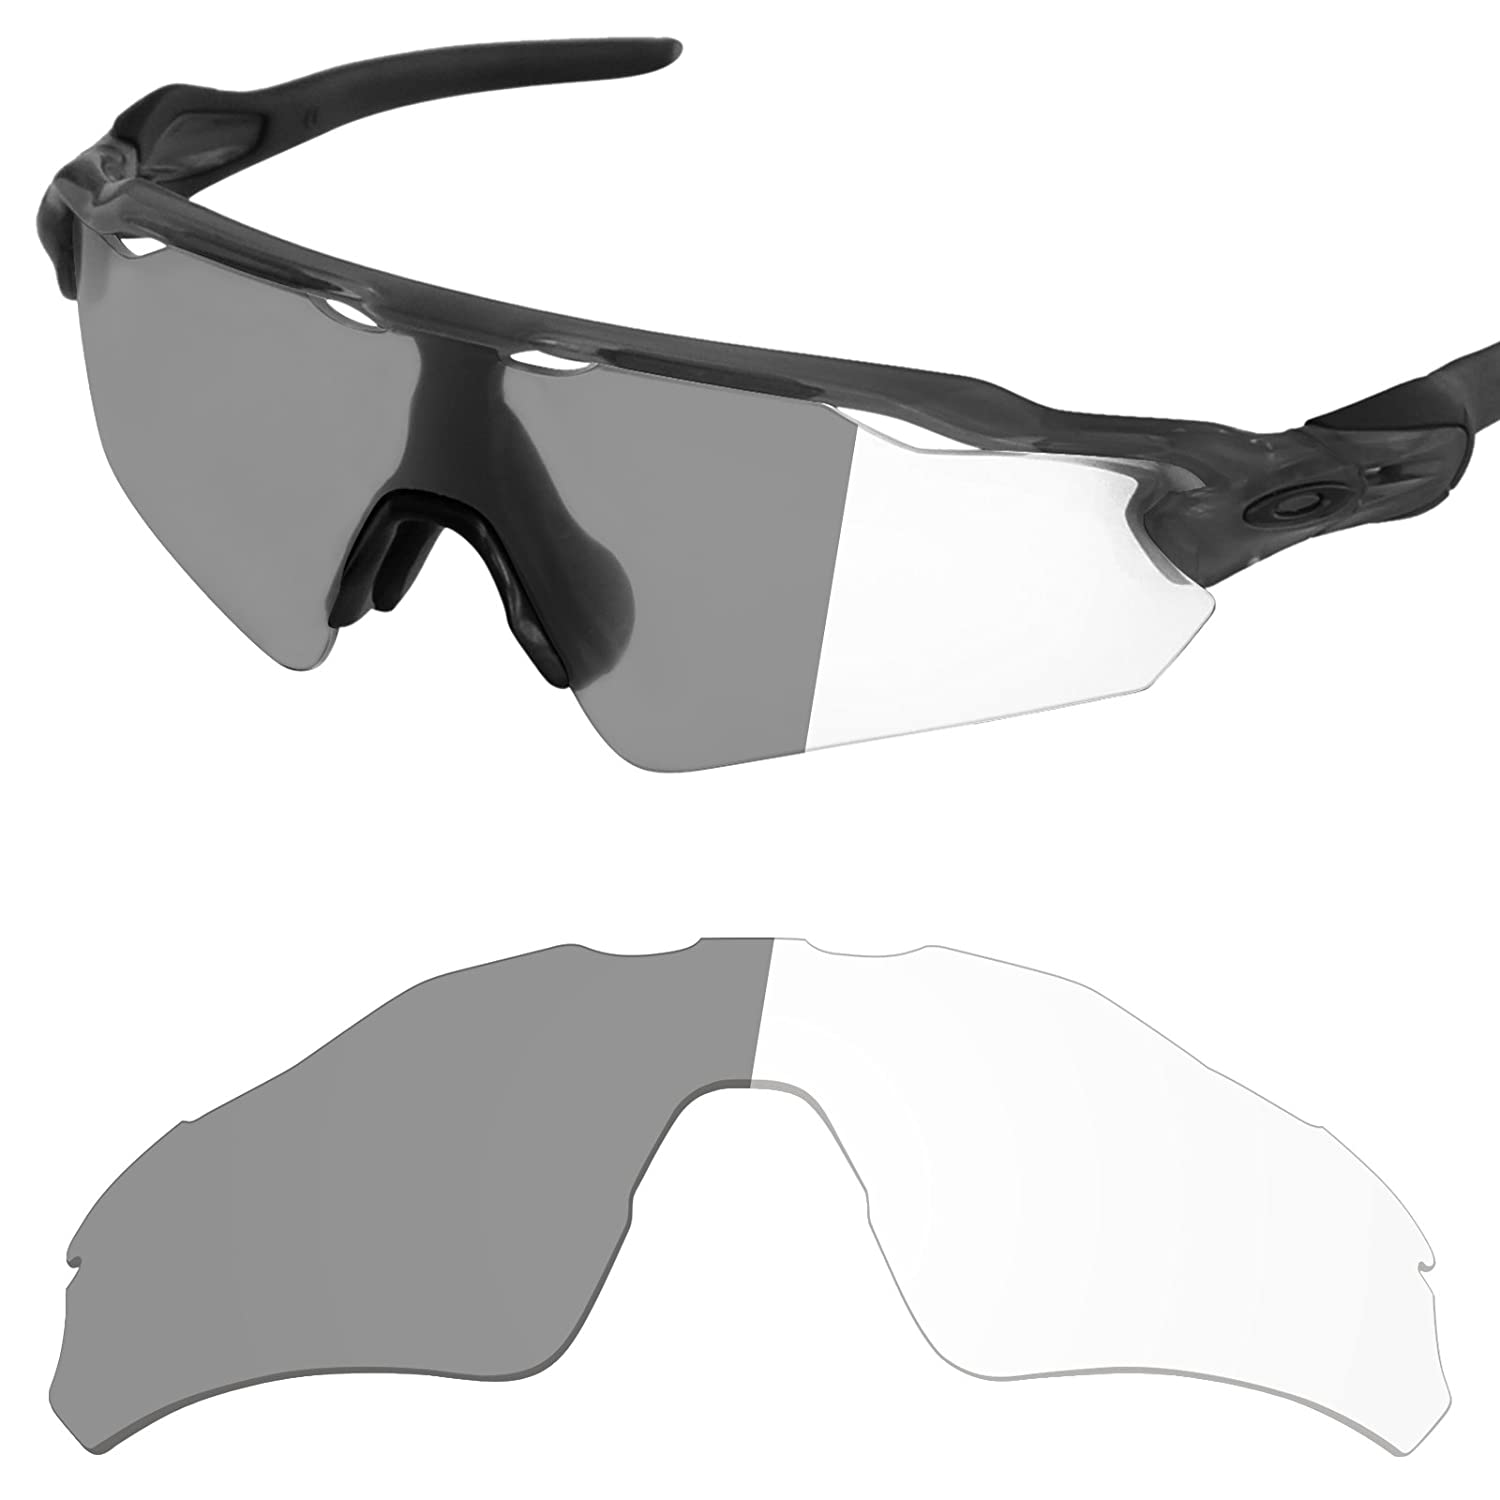 ea94a29e1f1 Amazon.com  Tintart Performance Replacement Lenses for Oakley Radar EV Path  - Photochromic Clear to Dark  Clothing